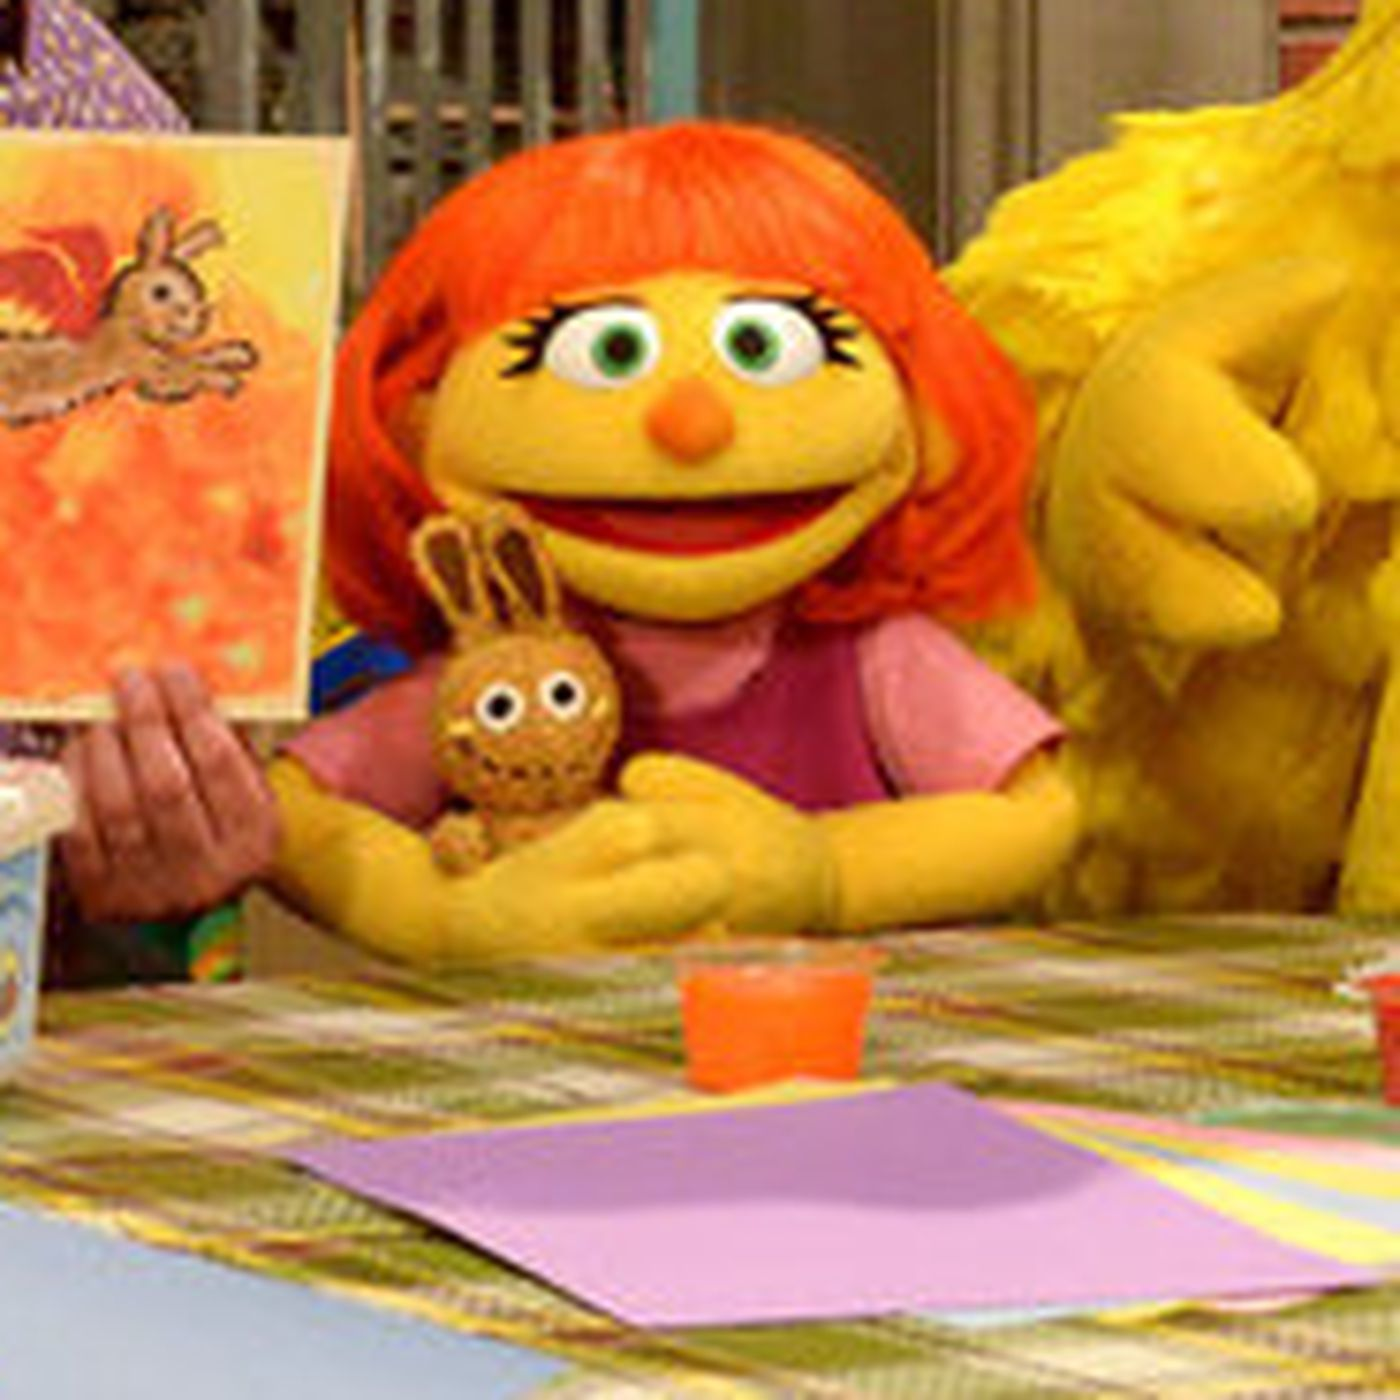 Sesame Street's newest Muppet is teaching kids how to